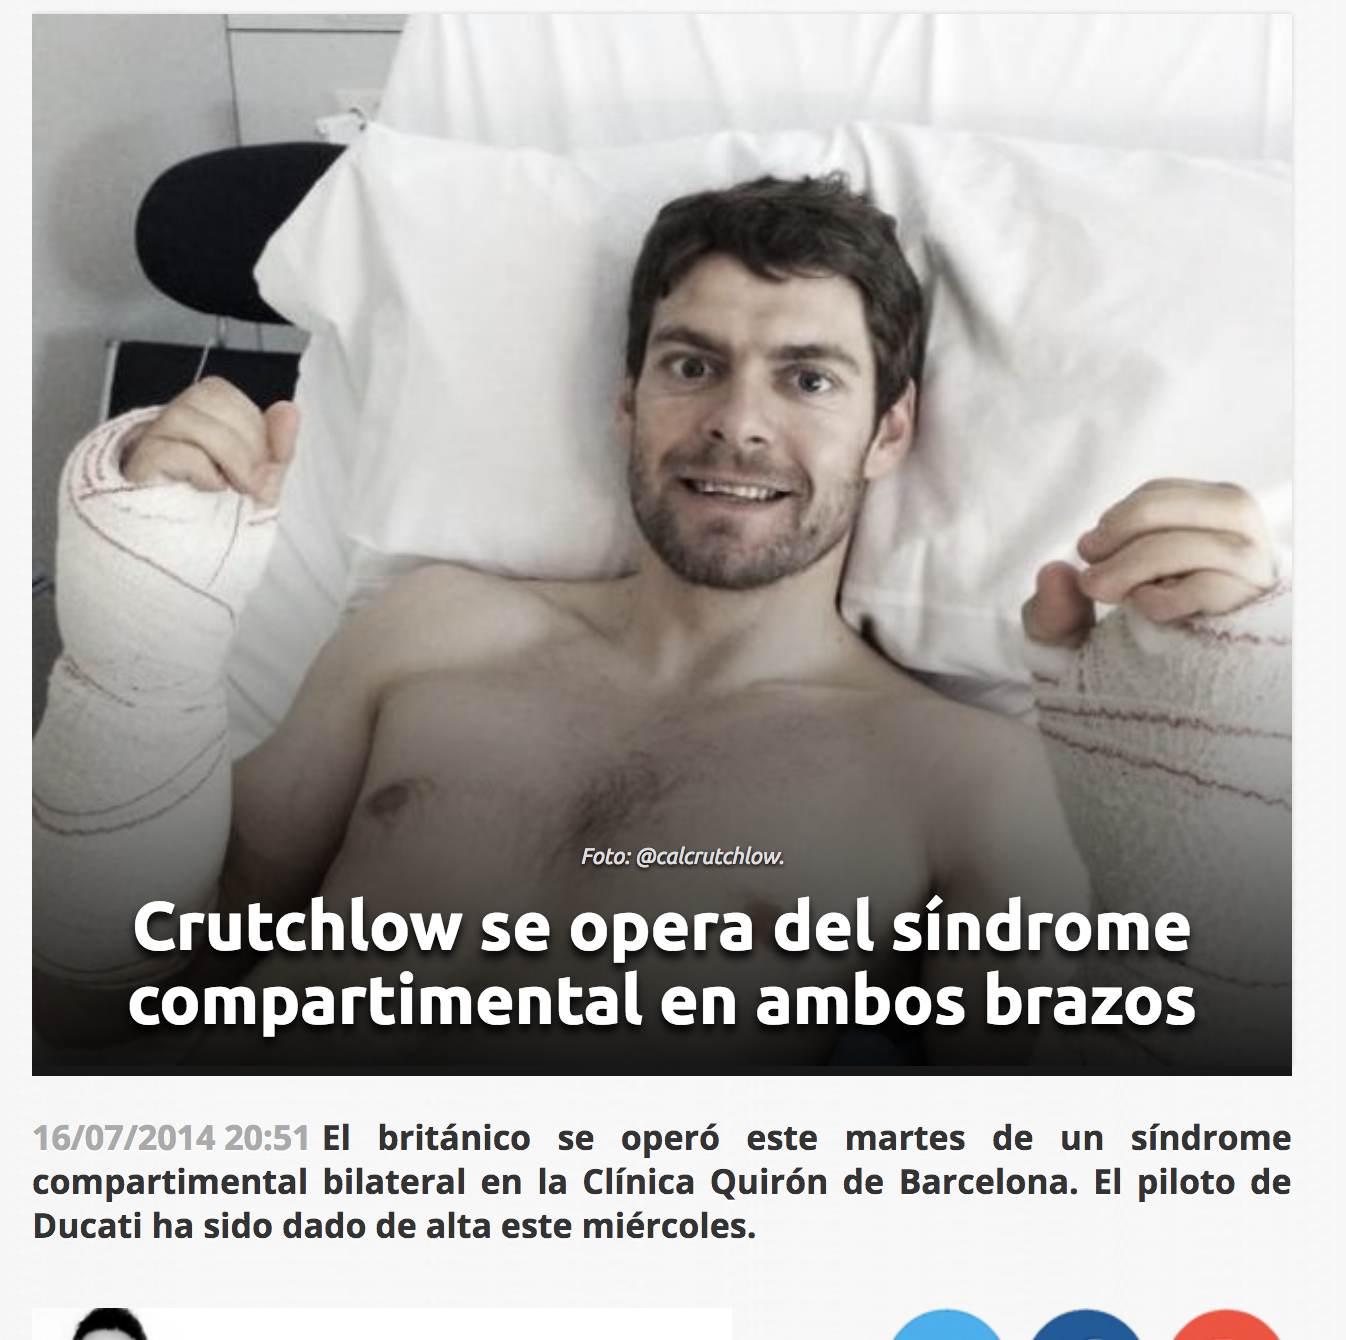 Crutchlow sindrome compartimental icatMA